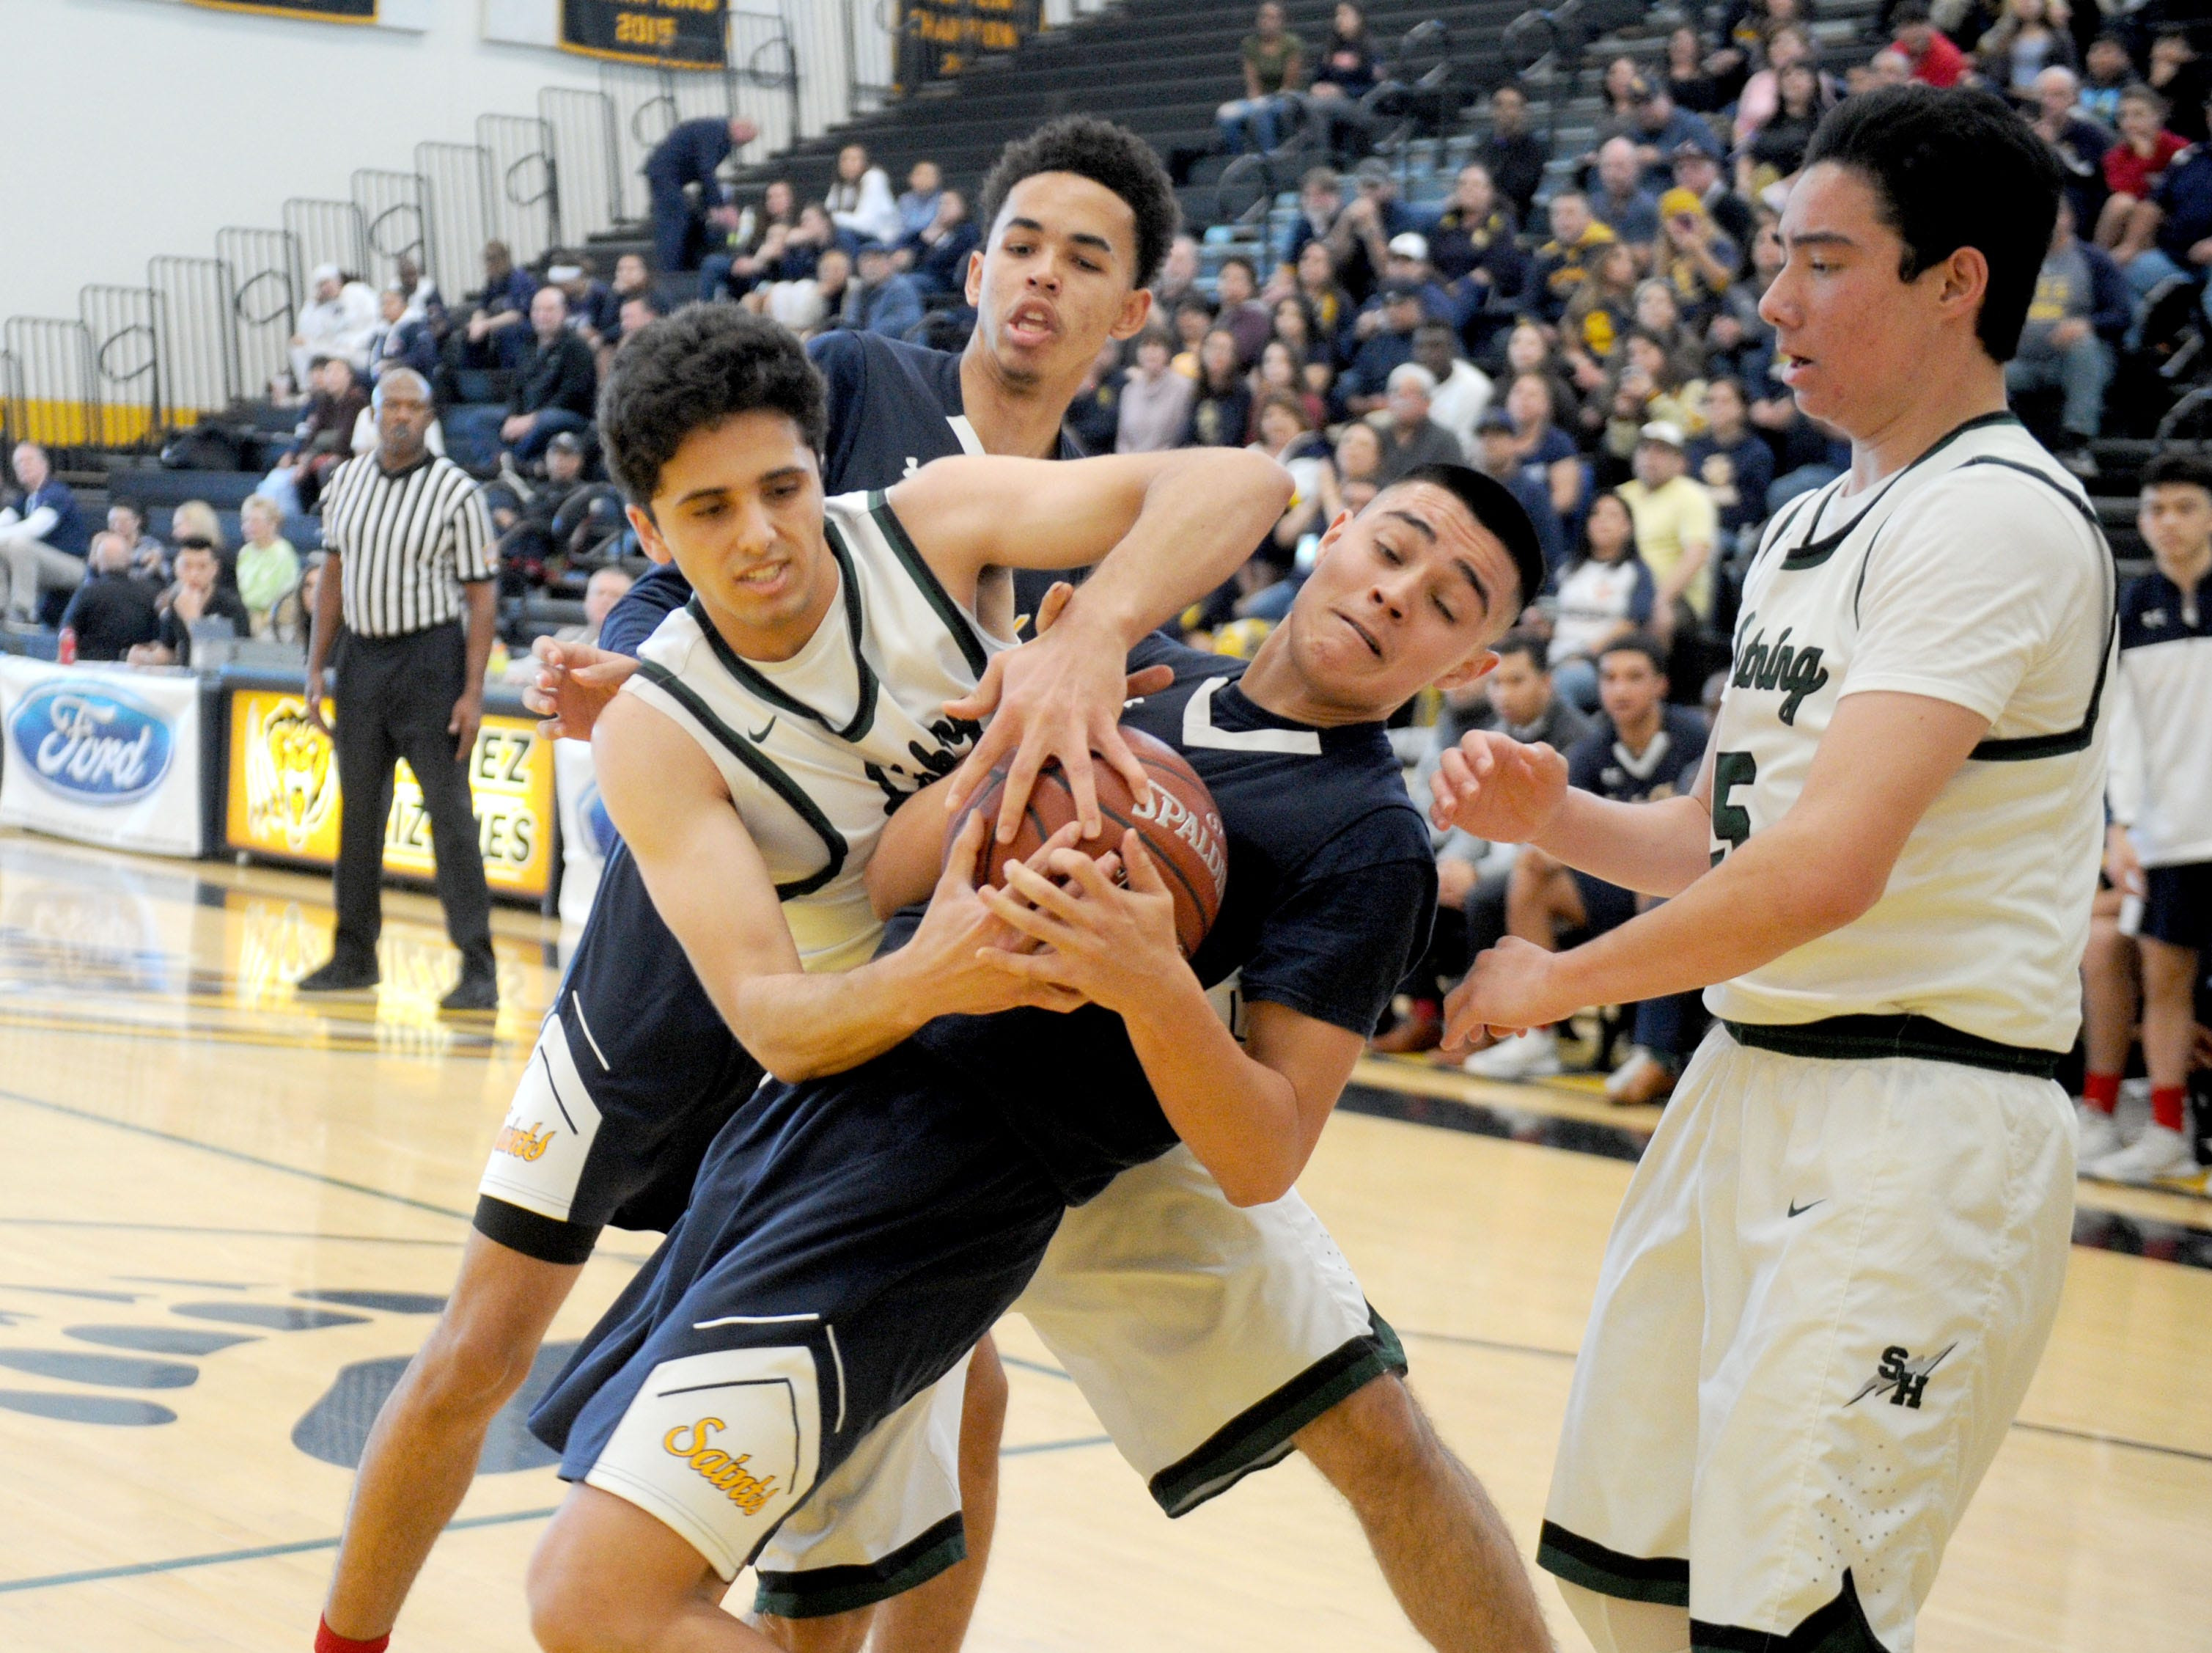 Santa Clara's Ivan Barocio, center, tries to hold onto the ball during the Saints' 68-52 win over Sage Hill in the CIF-SS Division 5AA boys basketball final Saturday at Godinez High in Santa Ana.